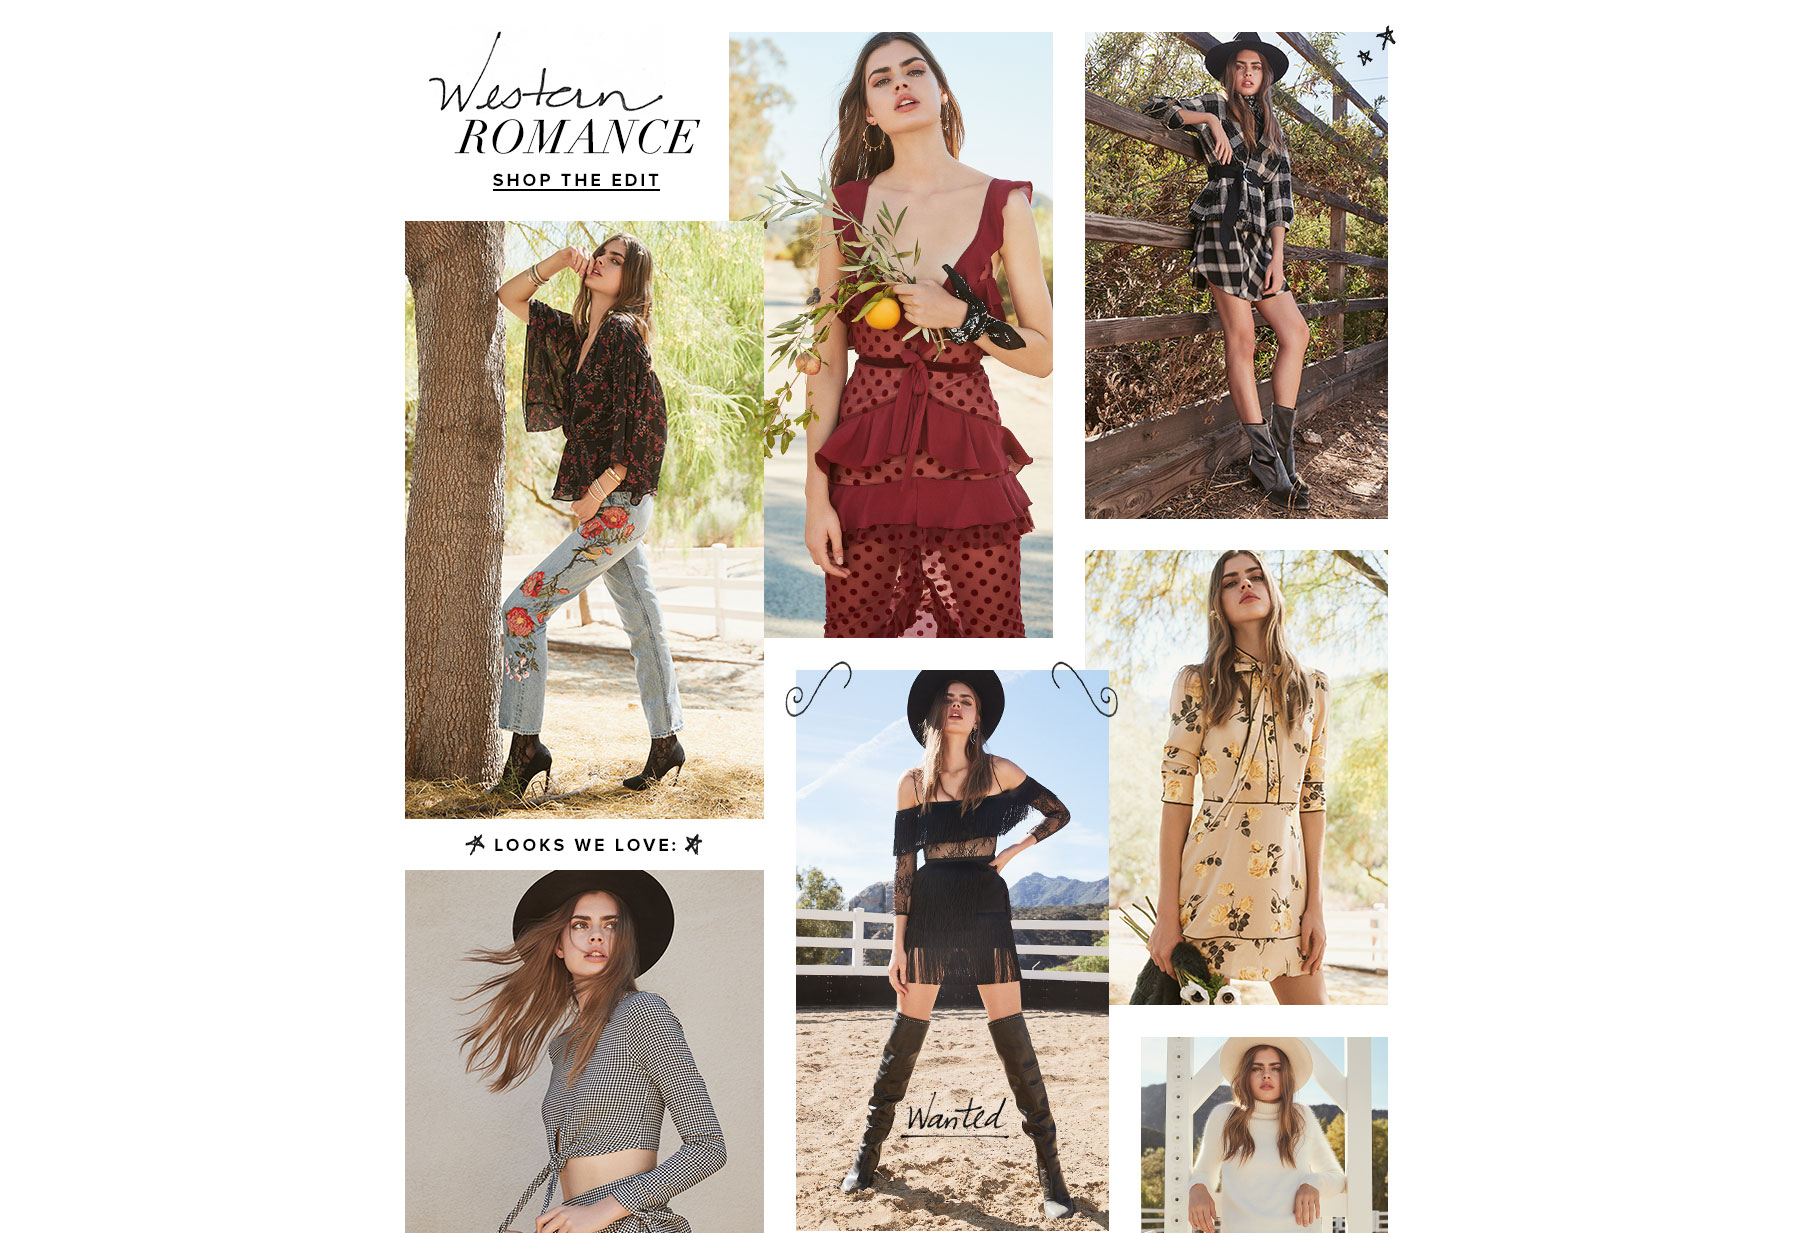 Looks We Love: Western Romance. A chic showdown of the season's most-wanted trends, from fiery dresses to riding boots. Shop the Edit.